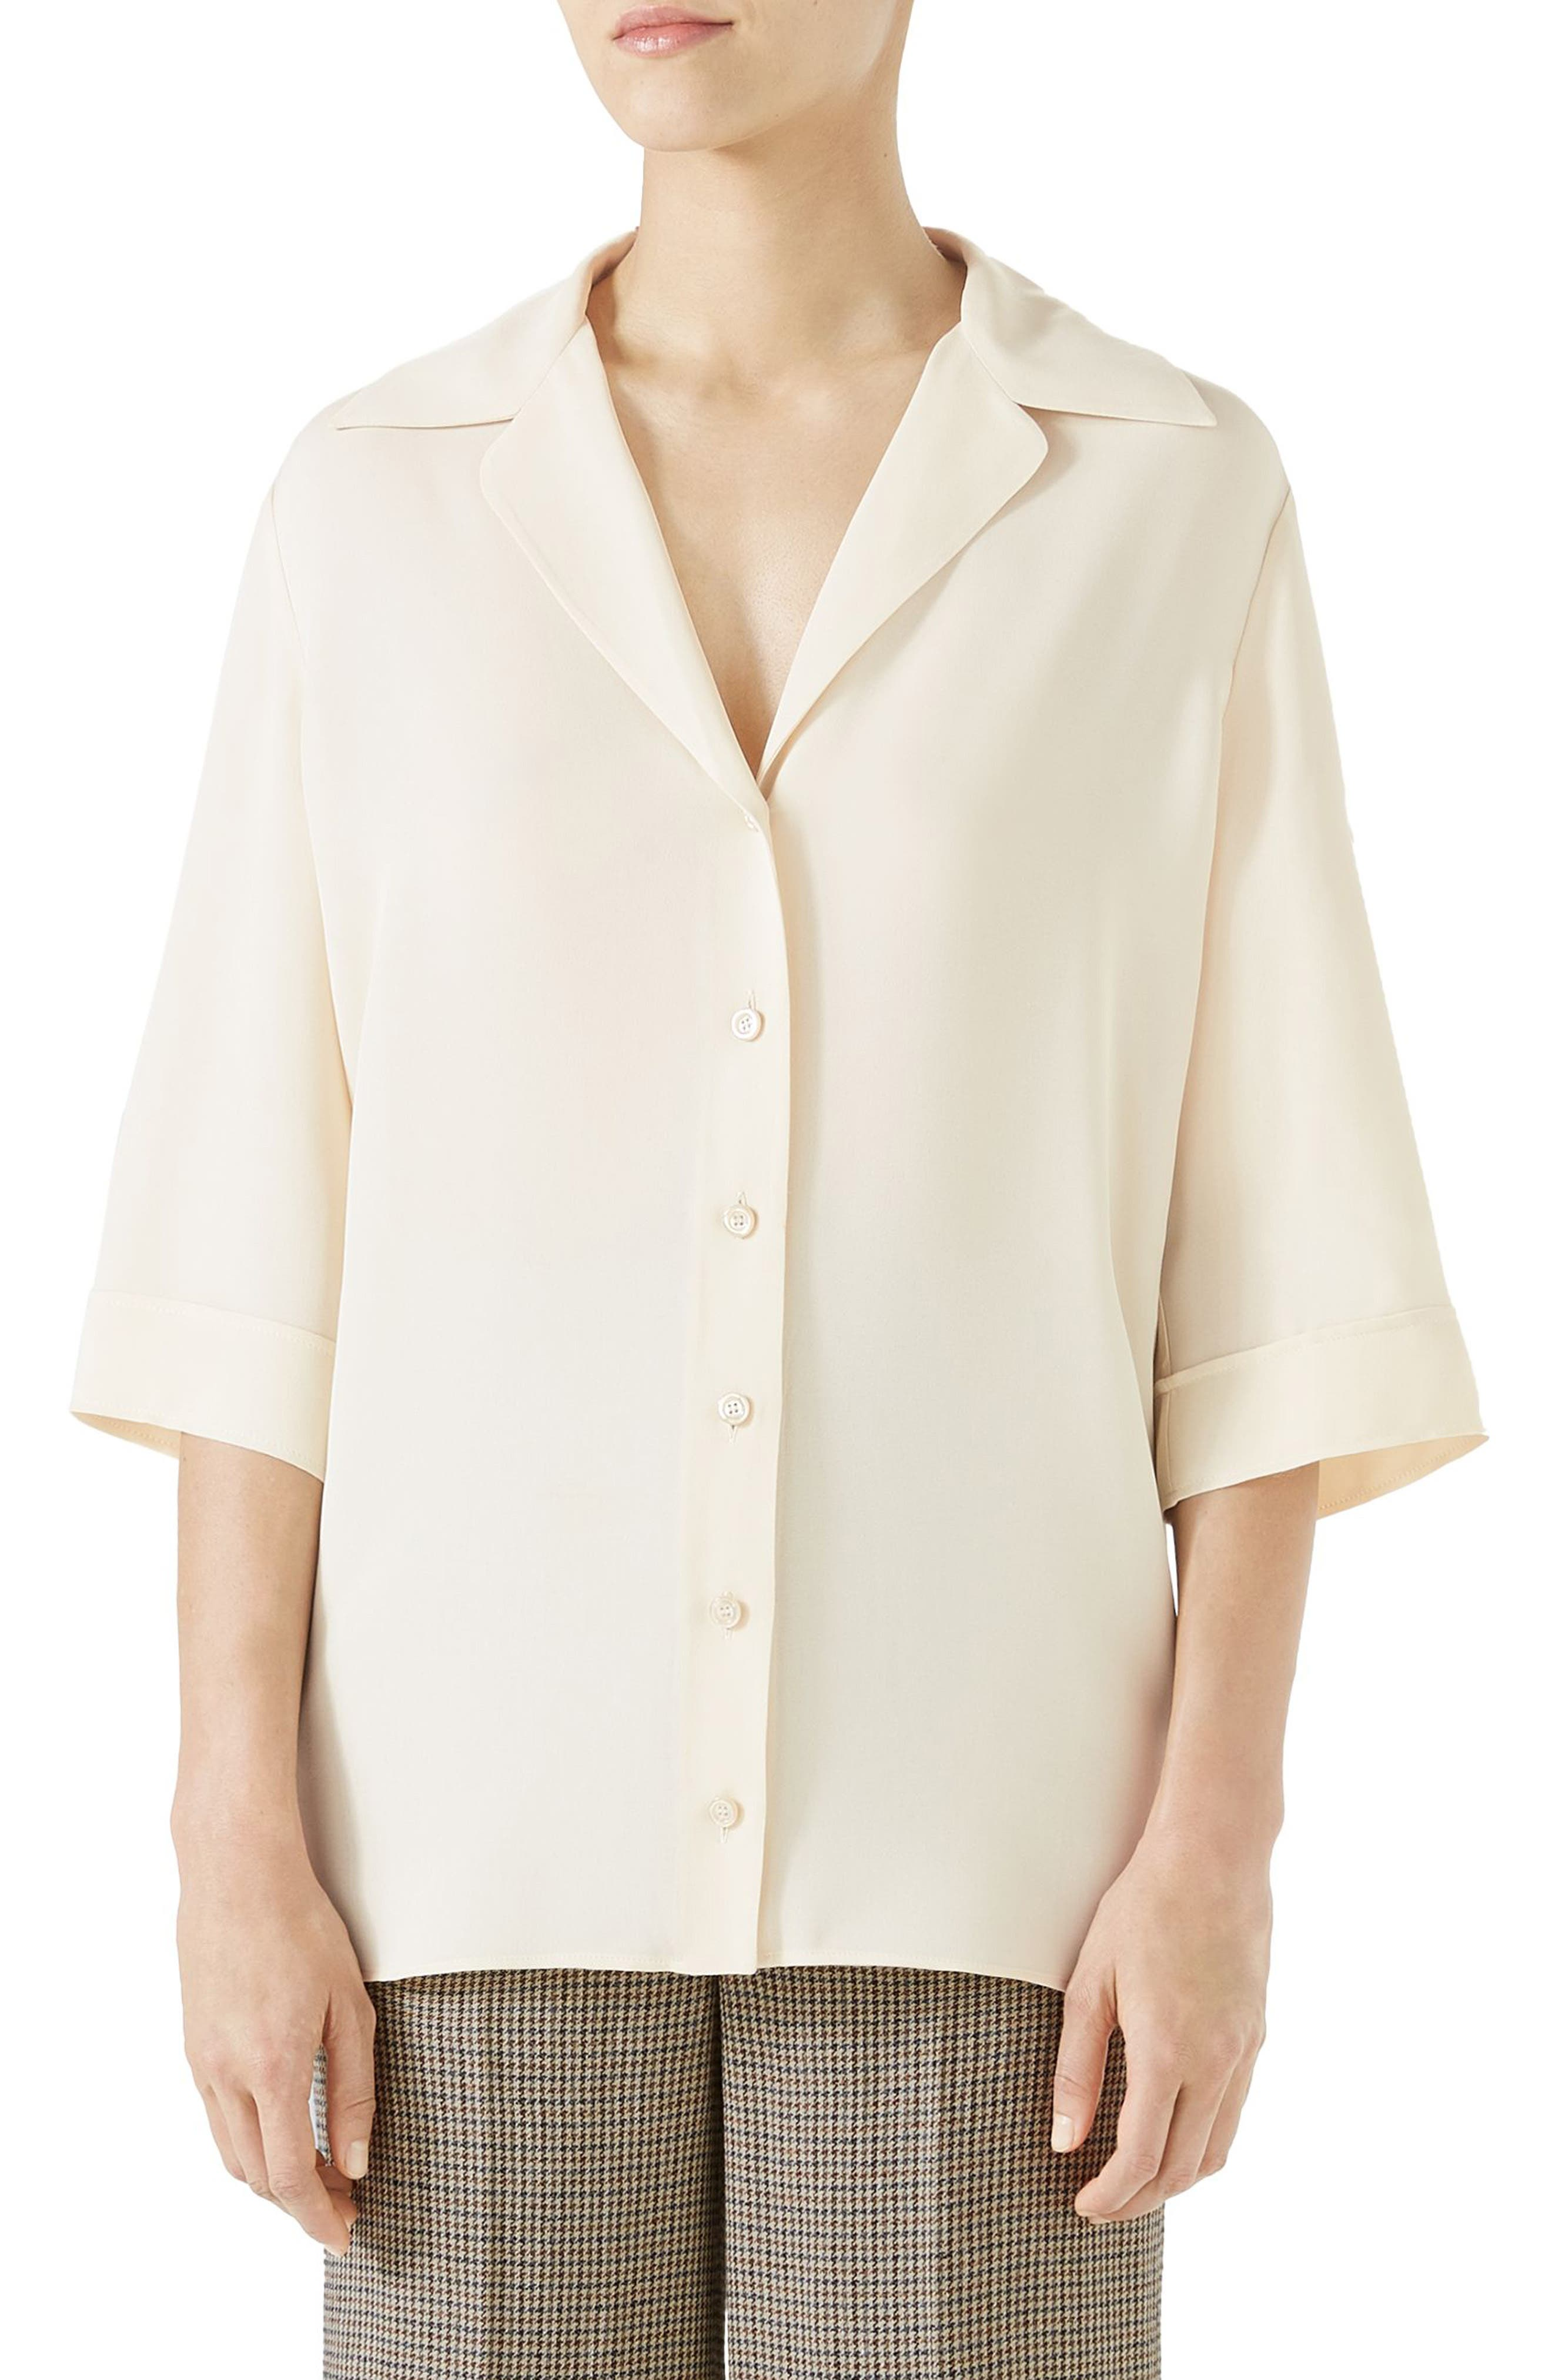 Hypnotism Button-Up Top,                         Main,                         color, IVORY